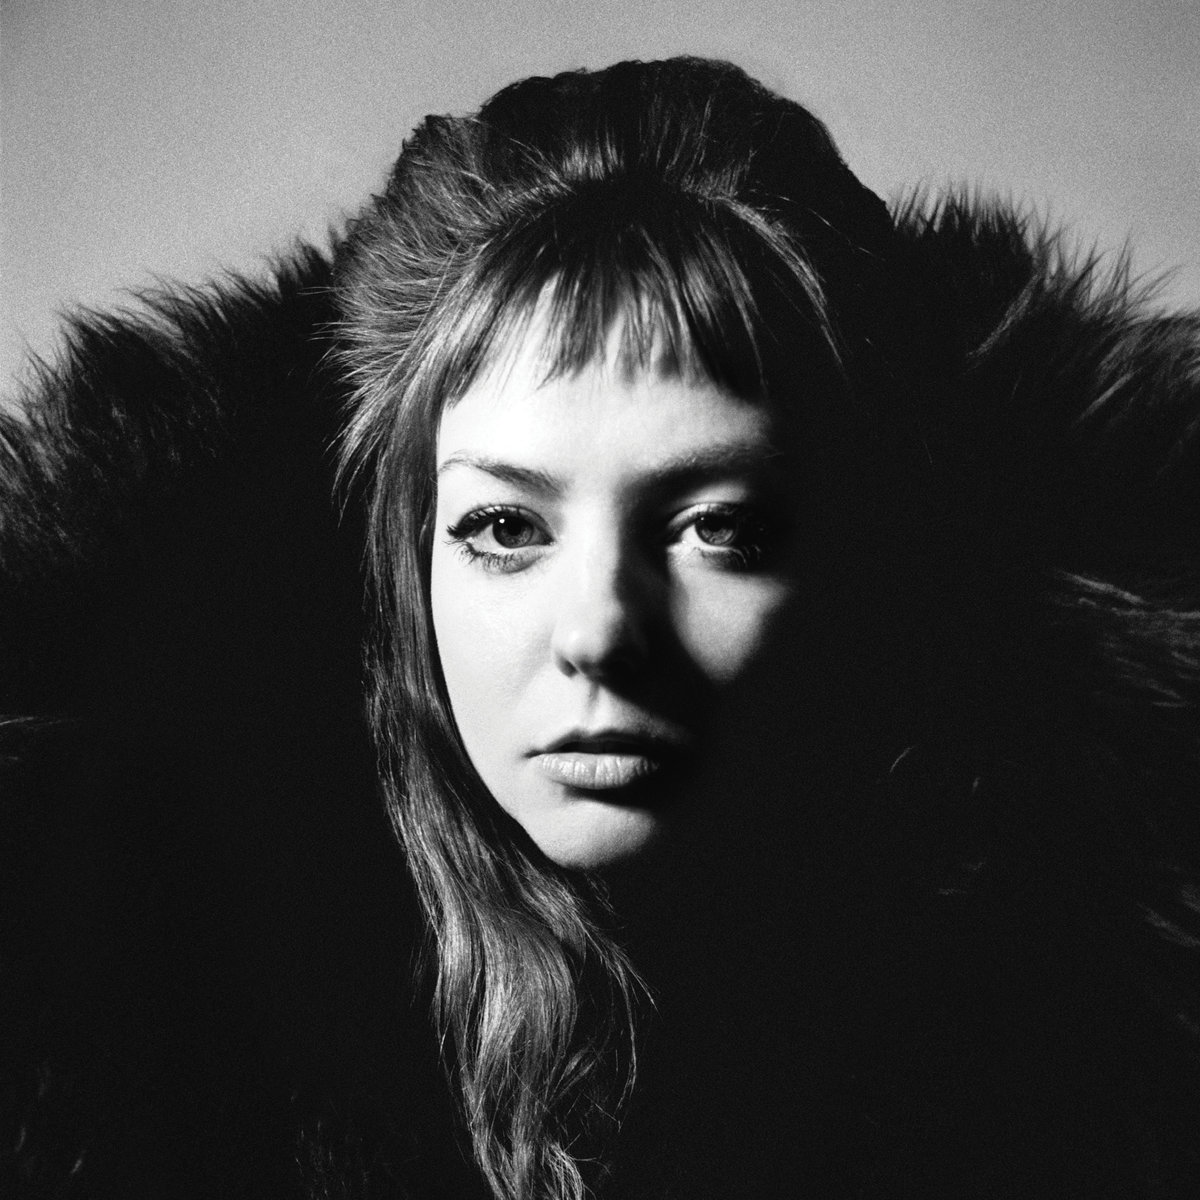 Angel Olsen Evolves with Impressively Cohesive and Resoundingly Huge Sound on 'All Mirrors' (ALBUM REVIEW)